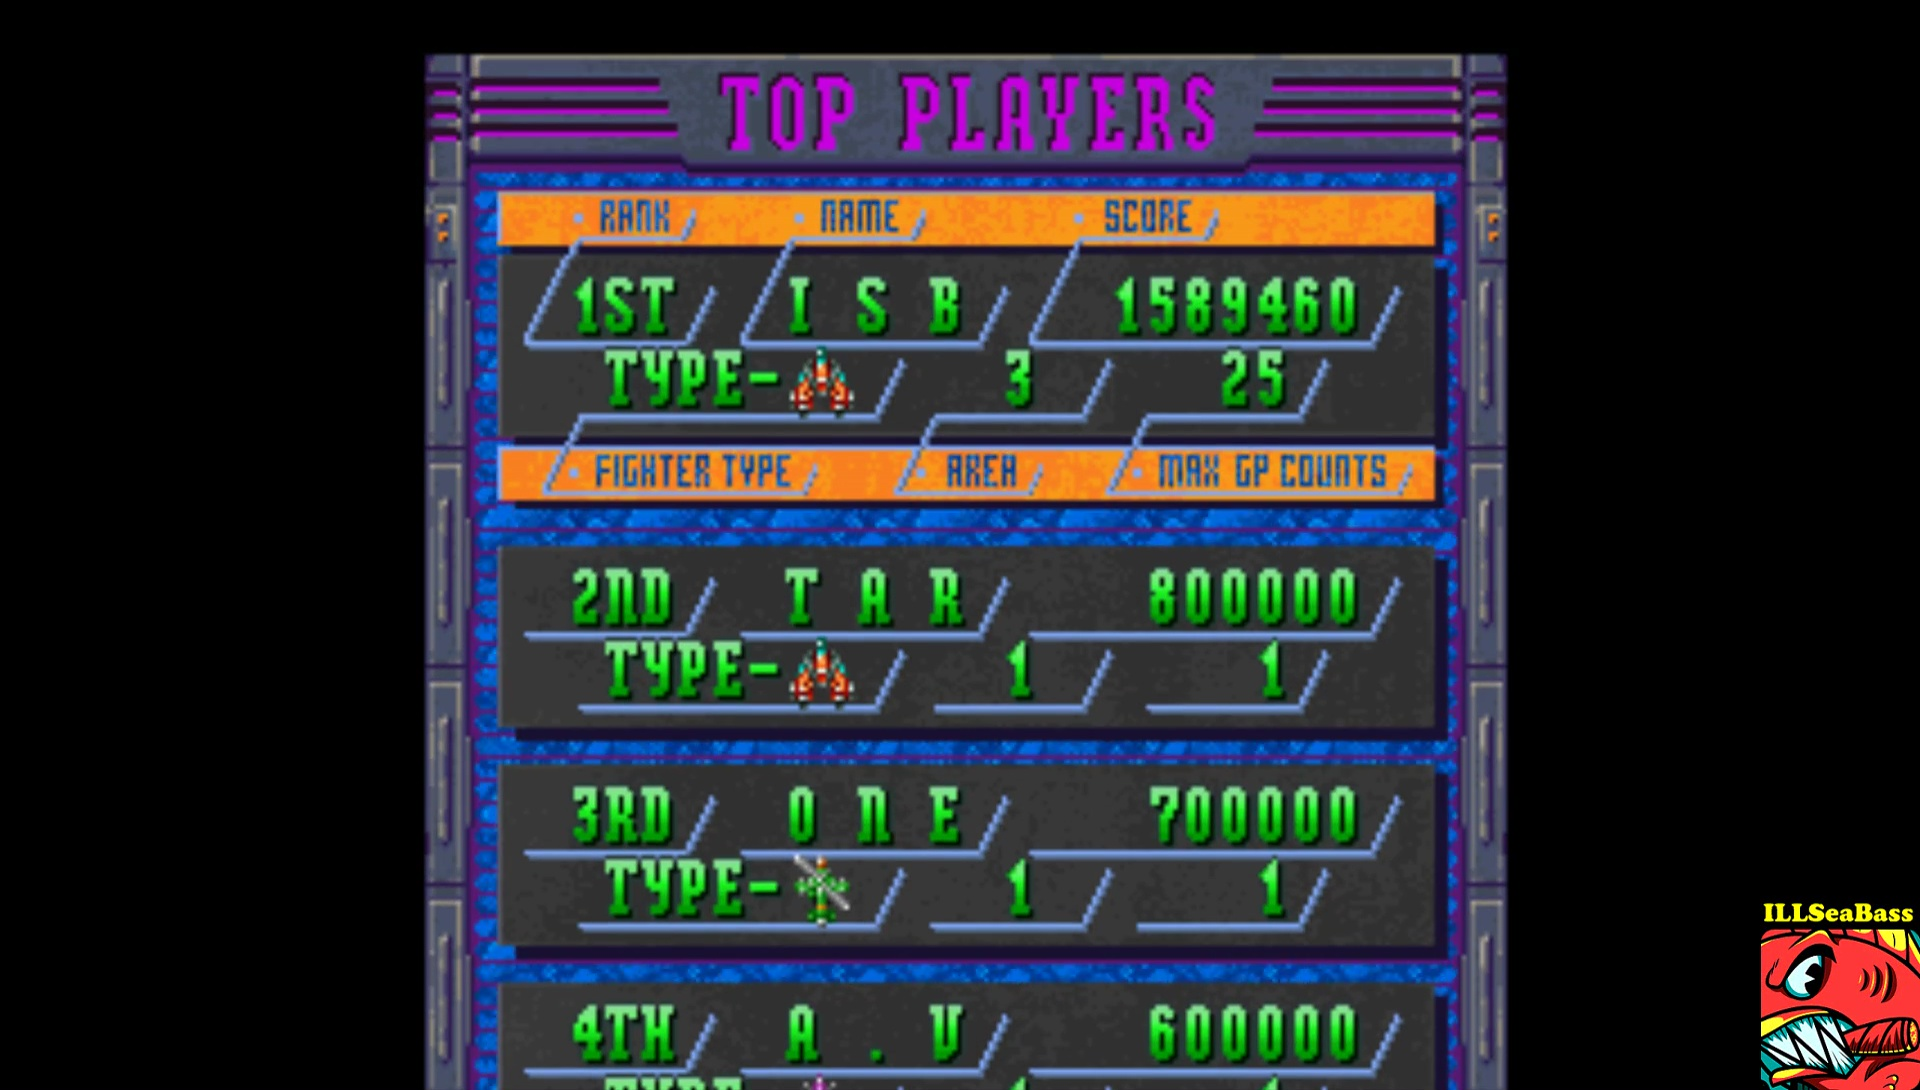 ILLSeaBass: Donpachi [Easy] (Playstation 1 Emulated) 1,589,460 points on 2017-02-15 22:32:41